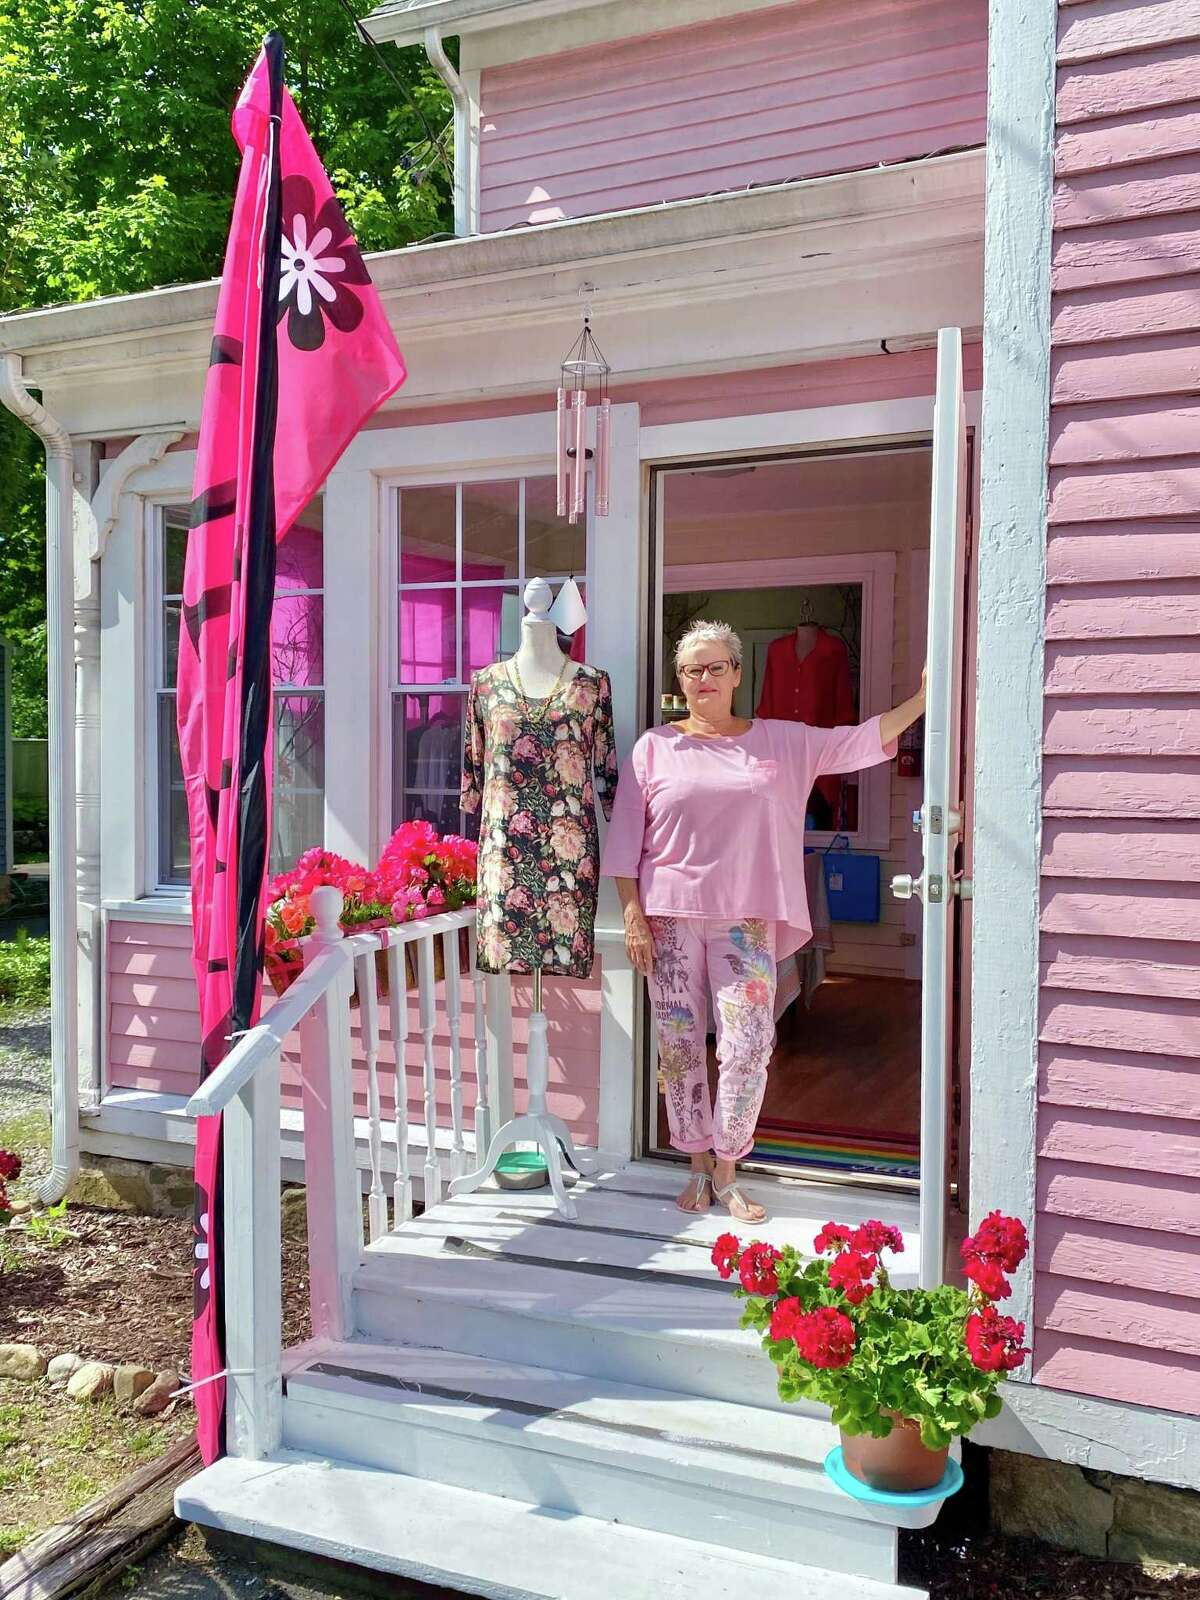 Brenda Quin, a resident of New Hartford and a native of South Africa who has worked as a fashion designer for decades, recently opened her own store, Diva USA, on Albany Turnpike in Canton.